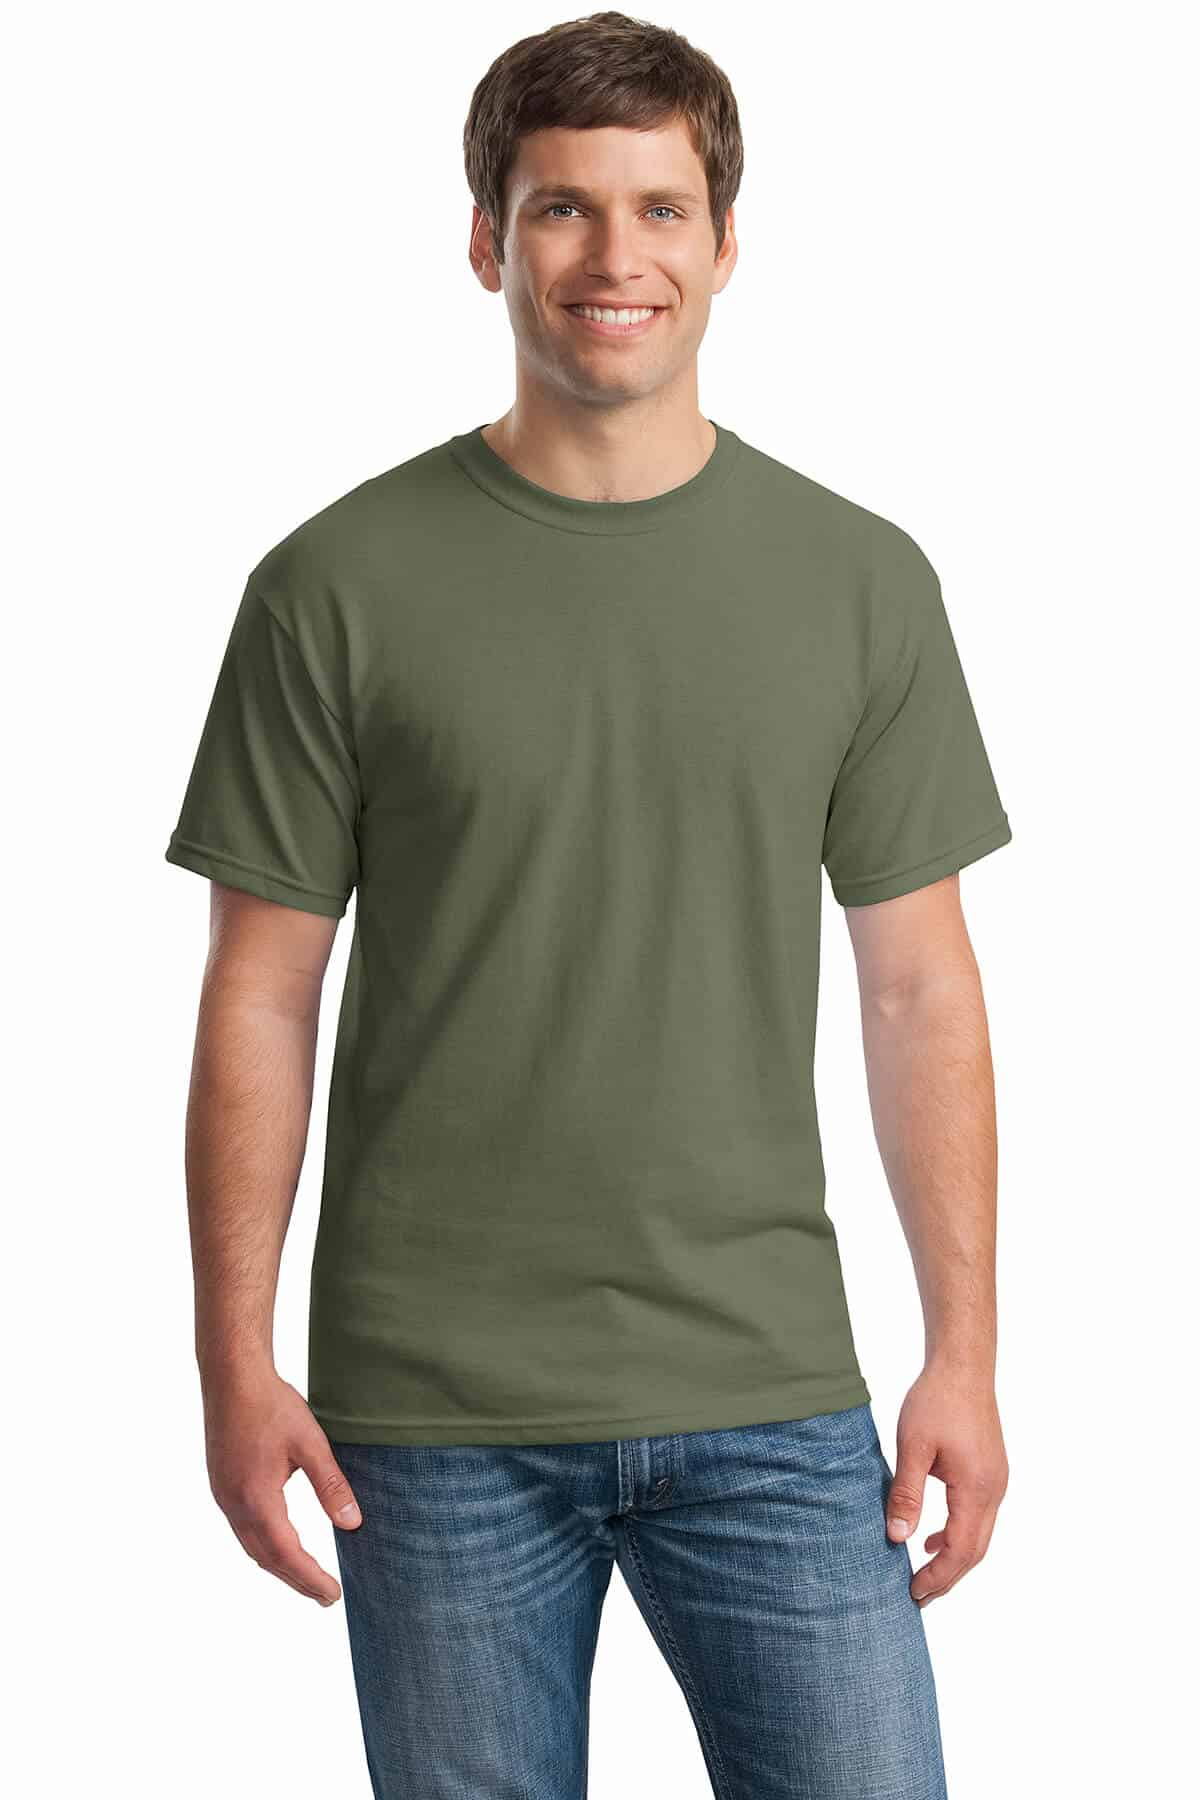 Military Green Tee Front